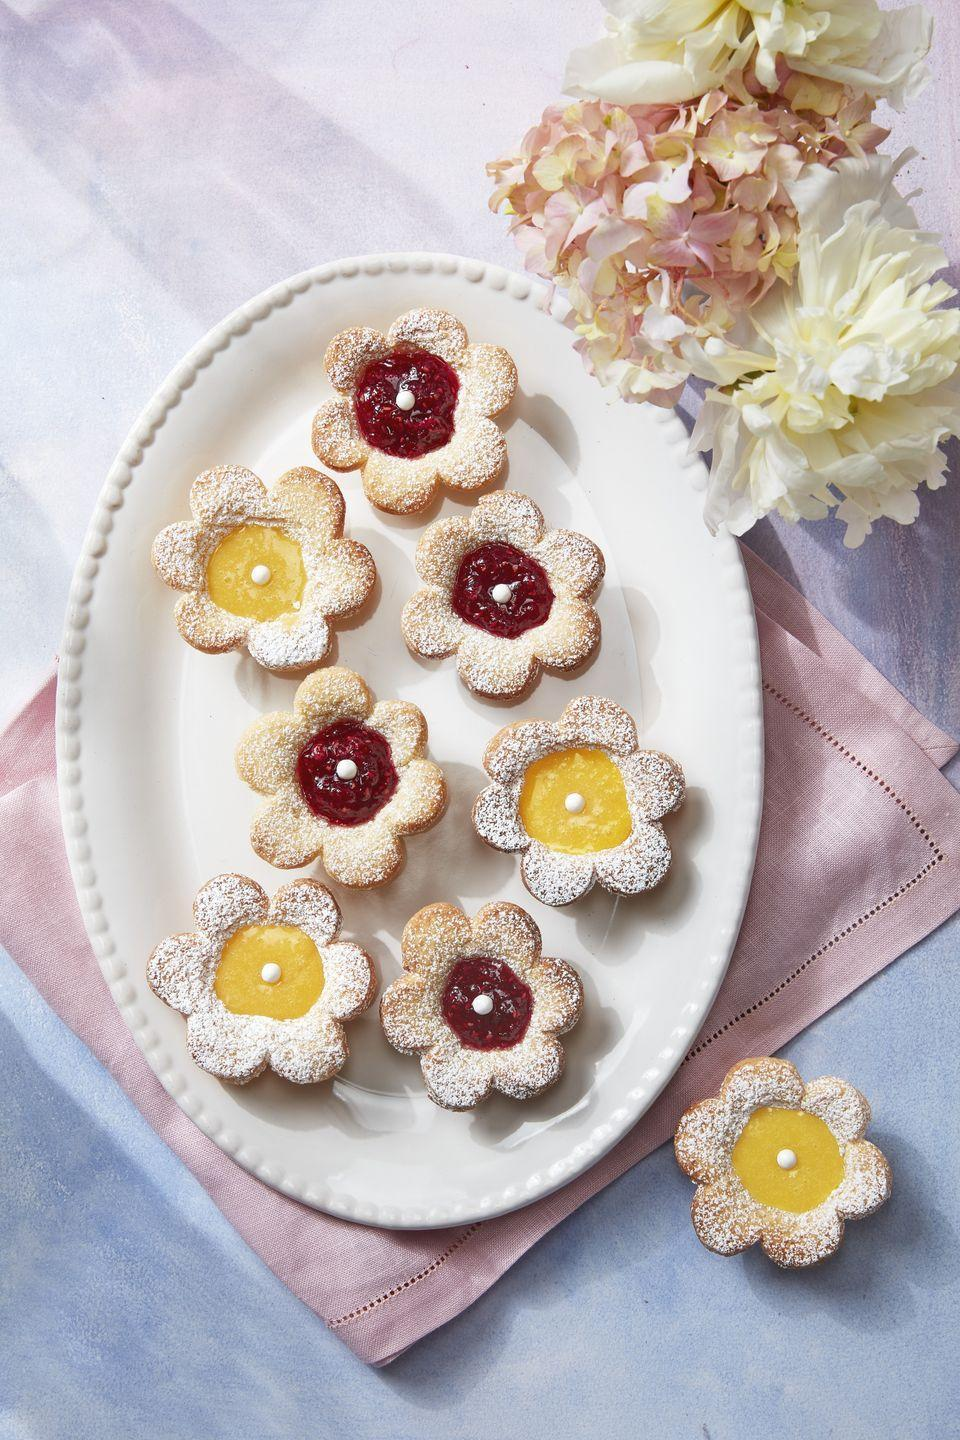 """<p>Don't be intimidated by the filling—store-bought jam or custard is all you need for these pretty little cookies.</p><p><strong><a href=""""https://www.countryliving.com/food-drinks/a30876783/flower-fruit-tarts-recipe/"""" rel=""""nofollow noopener"""" target=""""_blank"""" data-ylk=""""slk:Get the recipe"""" class=""""link rapid-noclick-resp"""">Get the recipe</a>.</strong></p><p><strong><a class=""""link rapid-noclick-resp"""" href=""""https://www.amazon.com/Fox-Run-3621-Flower-Stainless/dp/B001ET5YRA/?tag=syn-yahoo-20&ascsubtag=%5Bartid%7C10050.g.32944821%5Bsrc%7Cyahoo-us"""" rel=""""nofollow noopener"""" target=""""_blank"""" data-ylk=""""slk:SHOP COOKIE CUTTERS"""">SHOP COOKIE CUTTERS</a><br></strong></p>"""